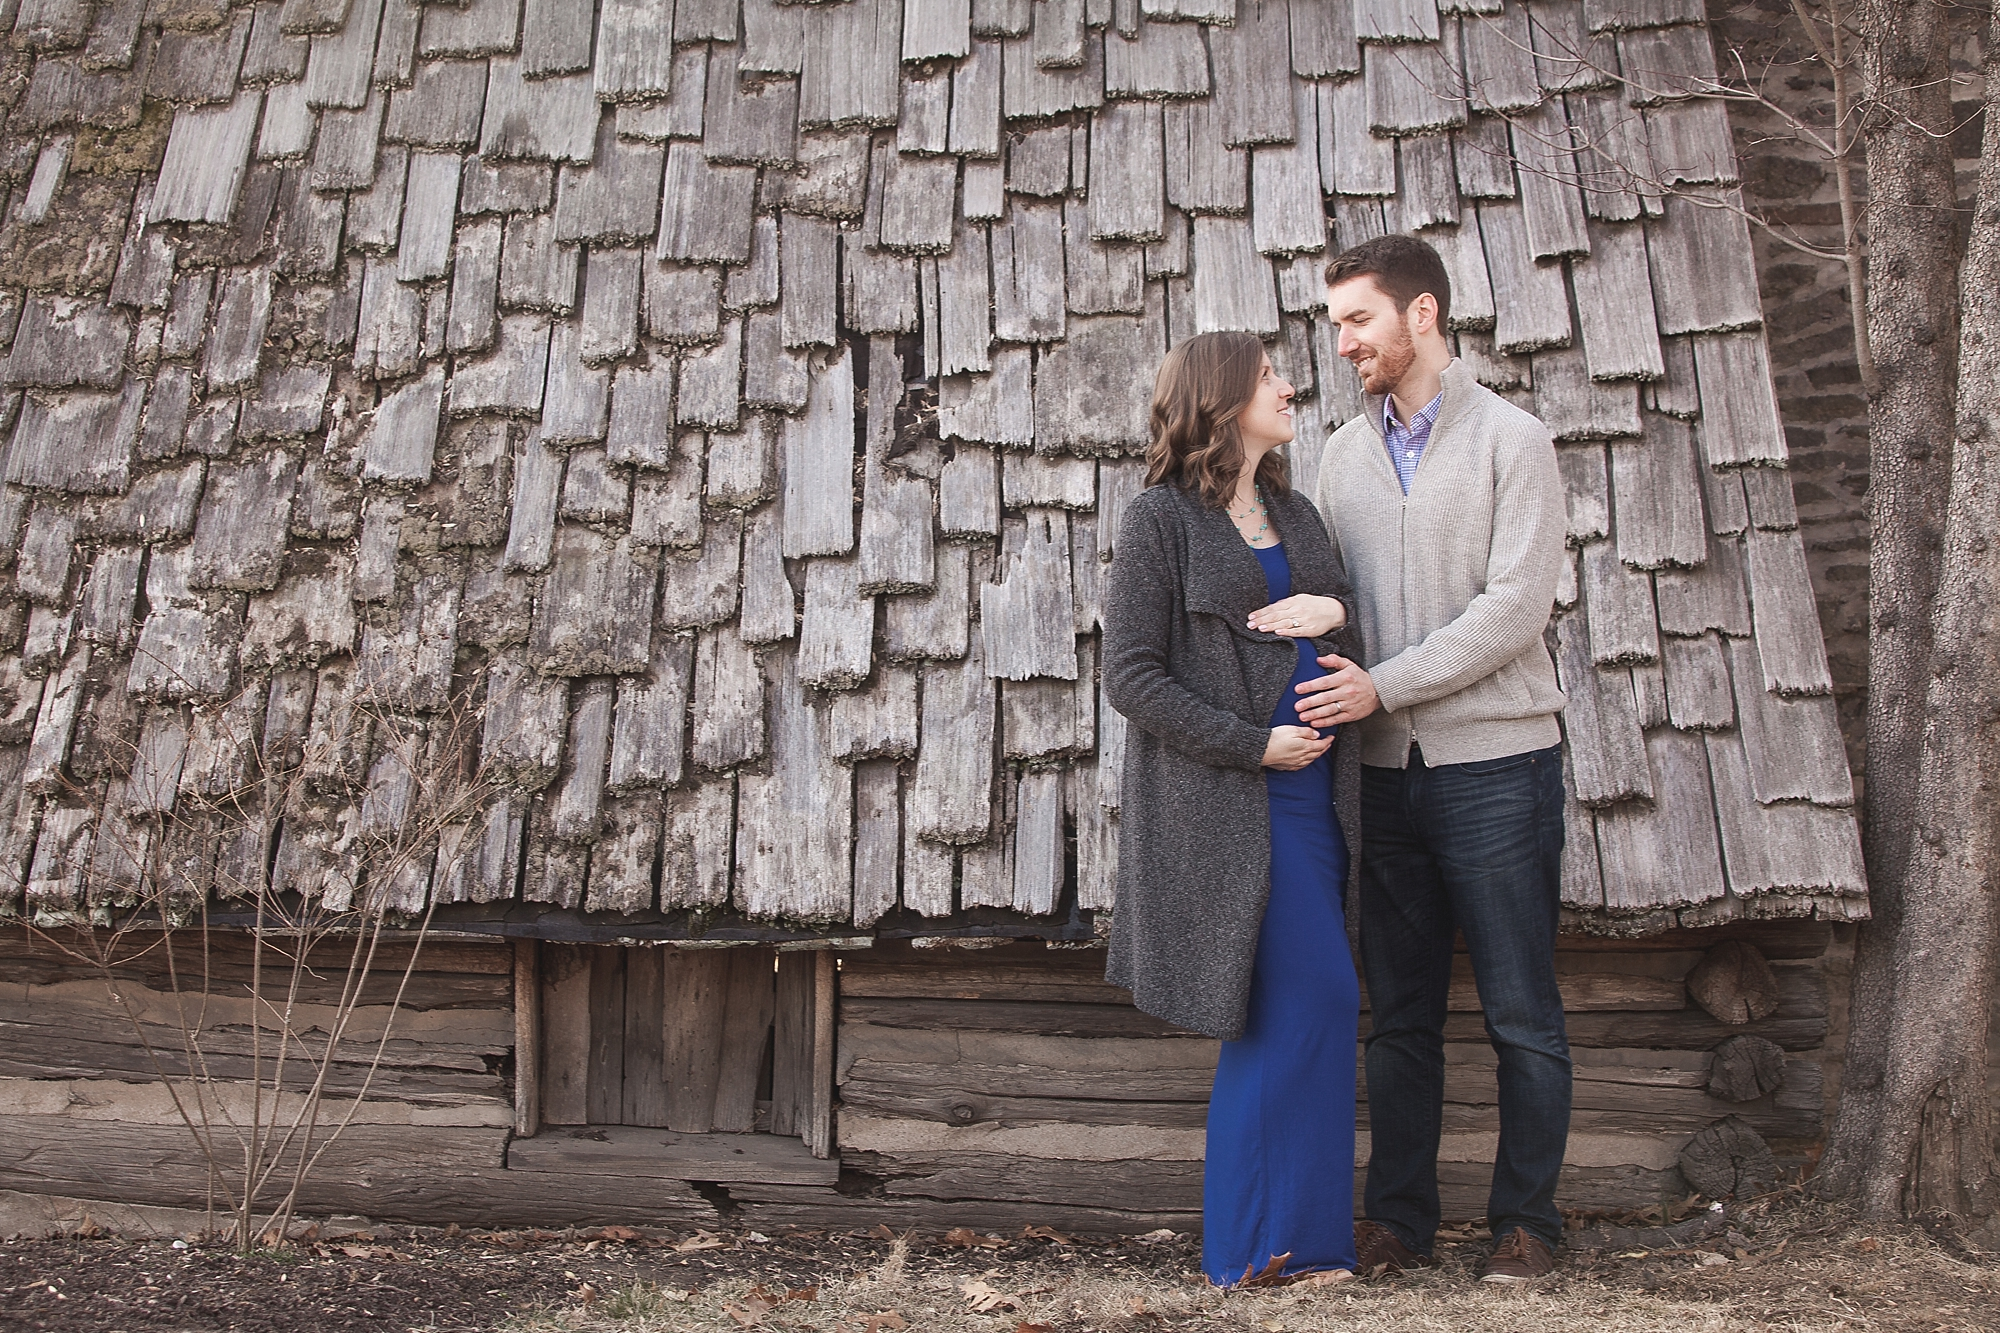 Joe_Mac_Creative_Maternity_Wedding_Engagements_Photography_Philadelphia_Valley_Forge__0019.jpg